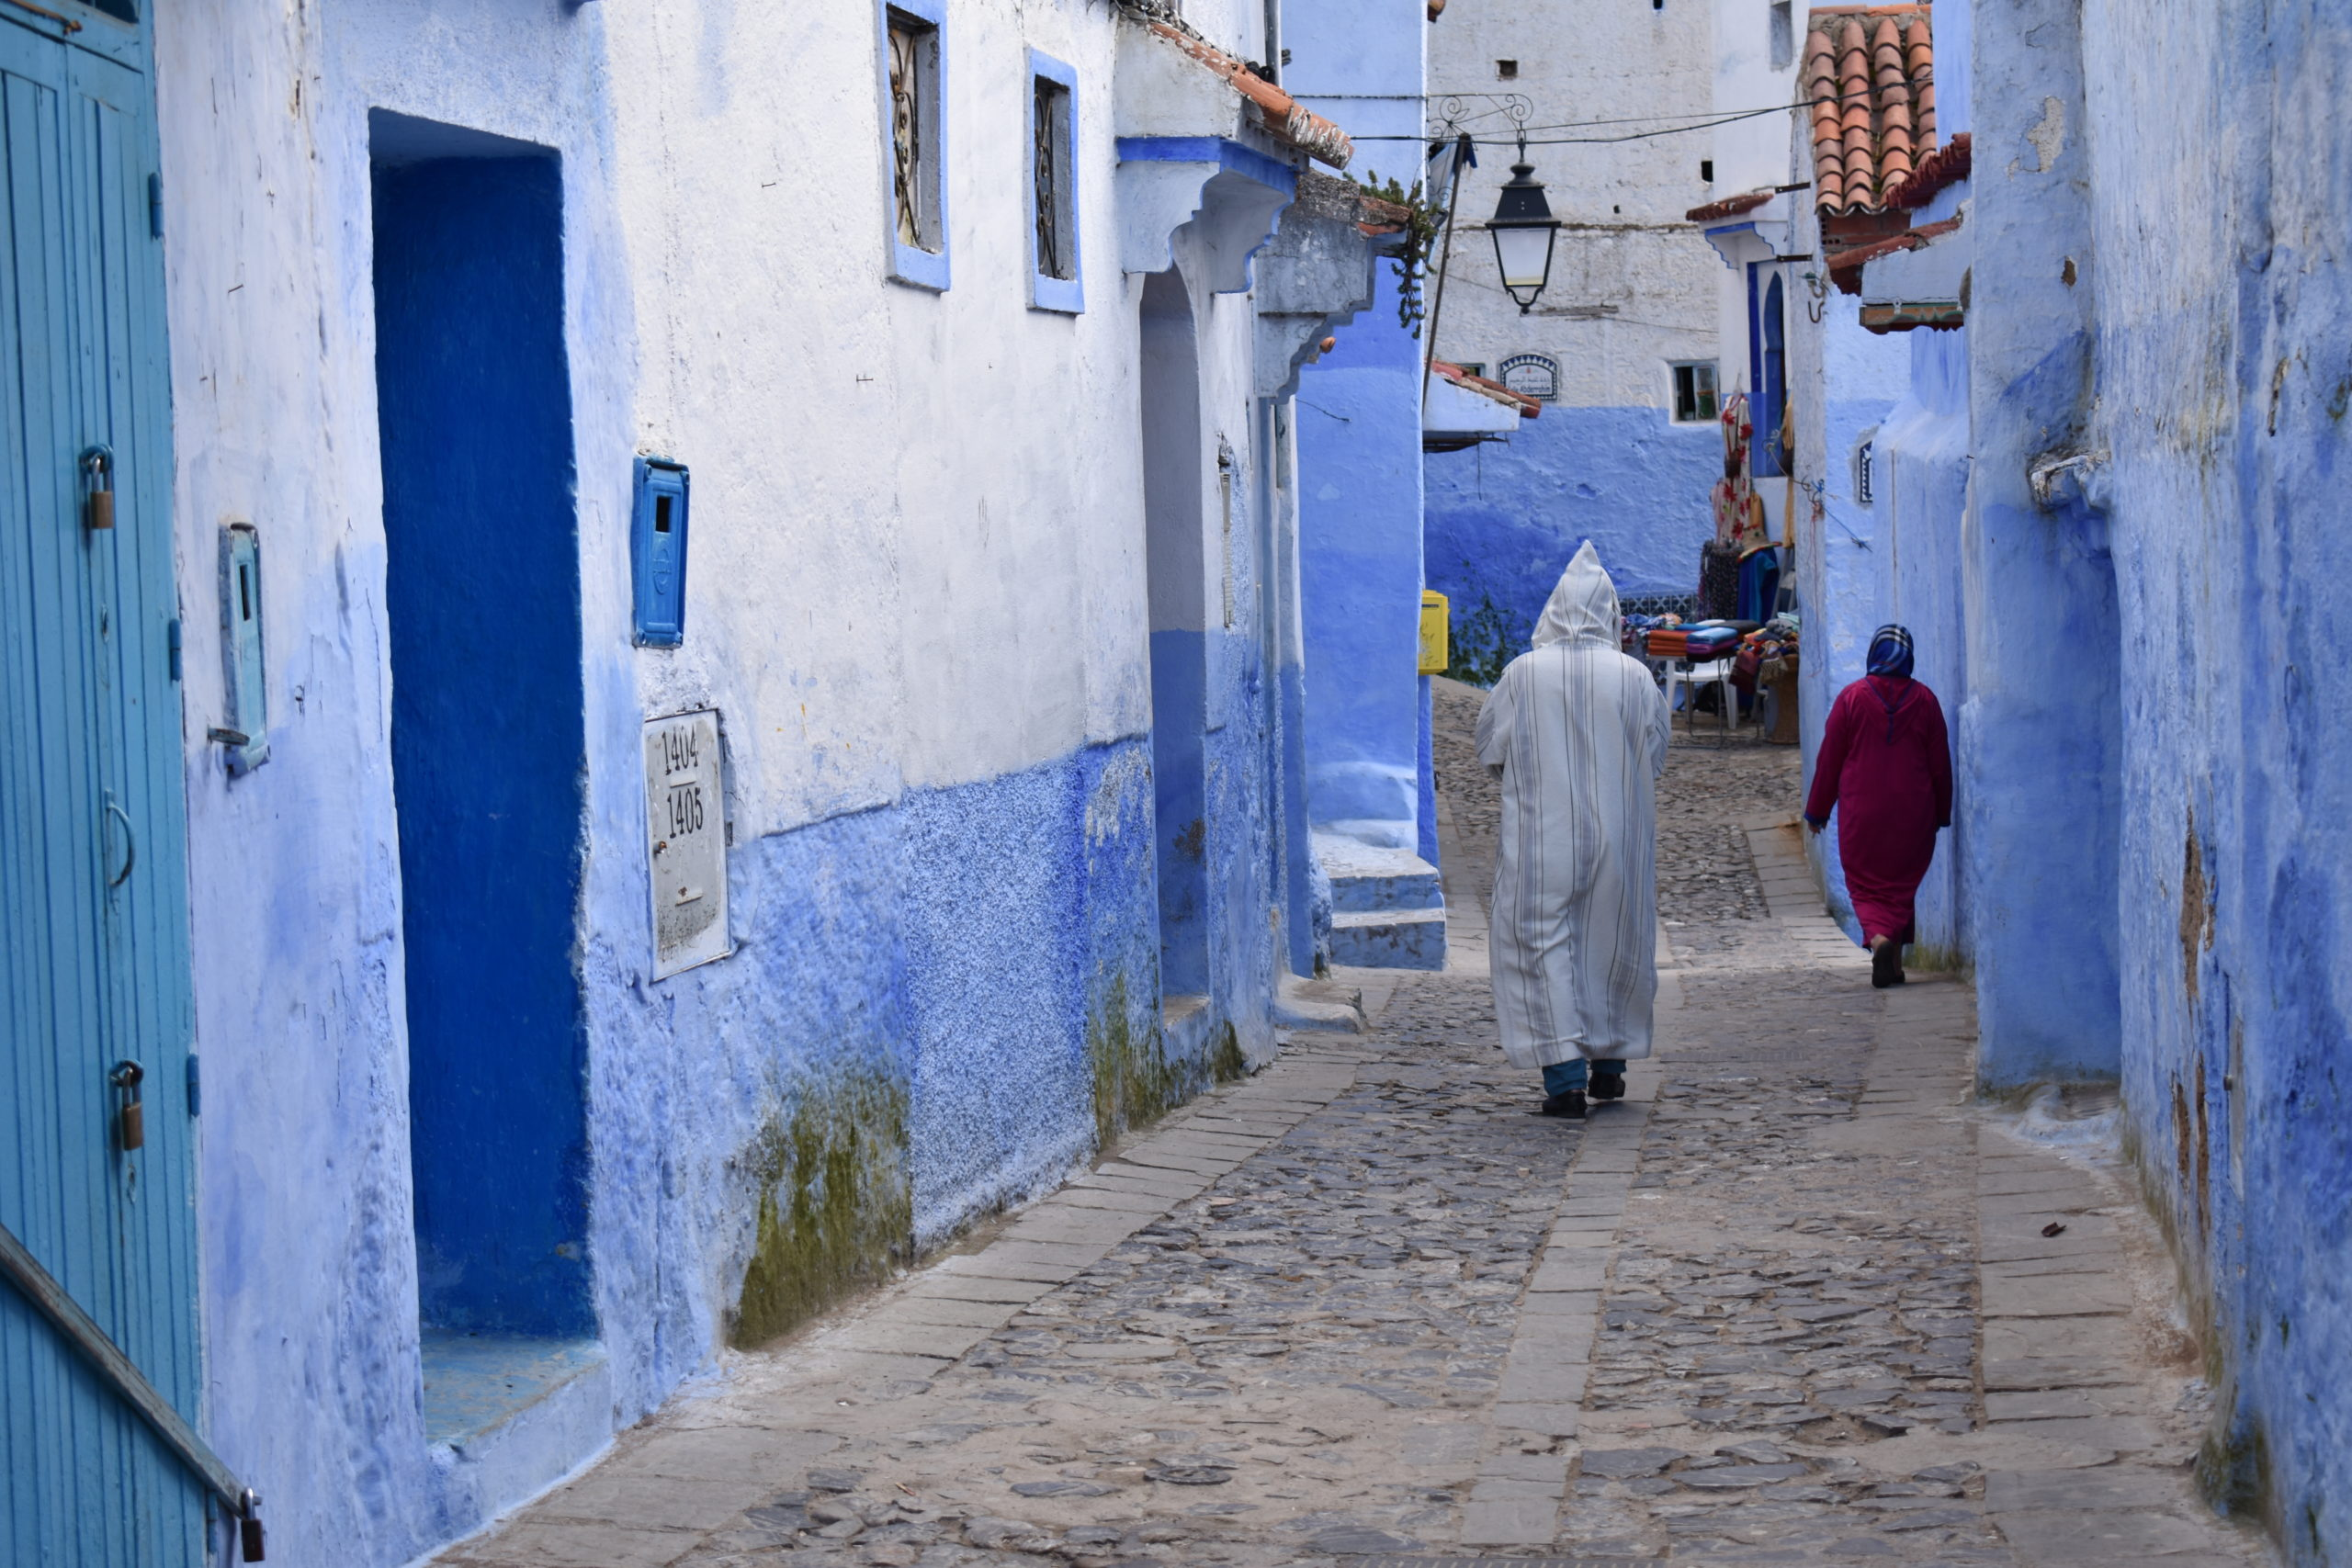 City Break in Morocco – Yes or No?